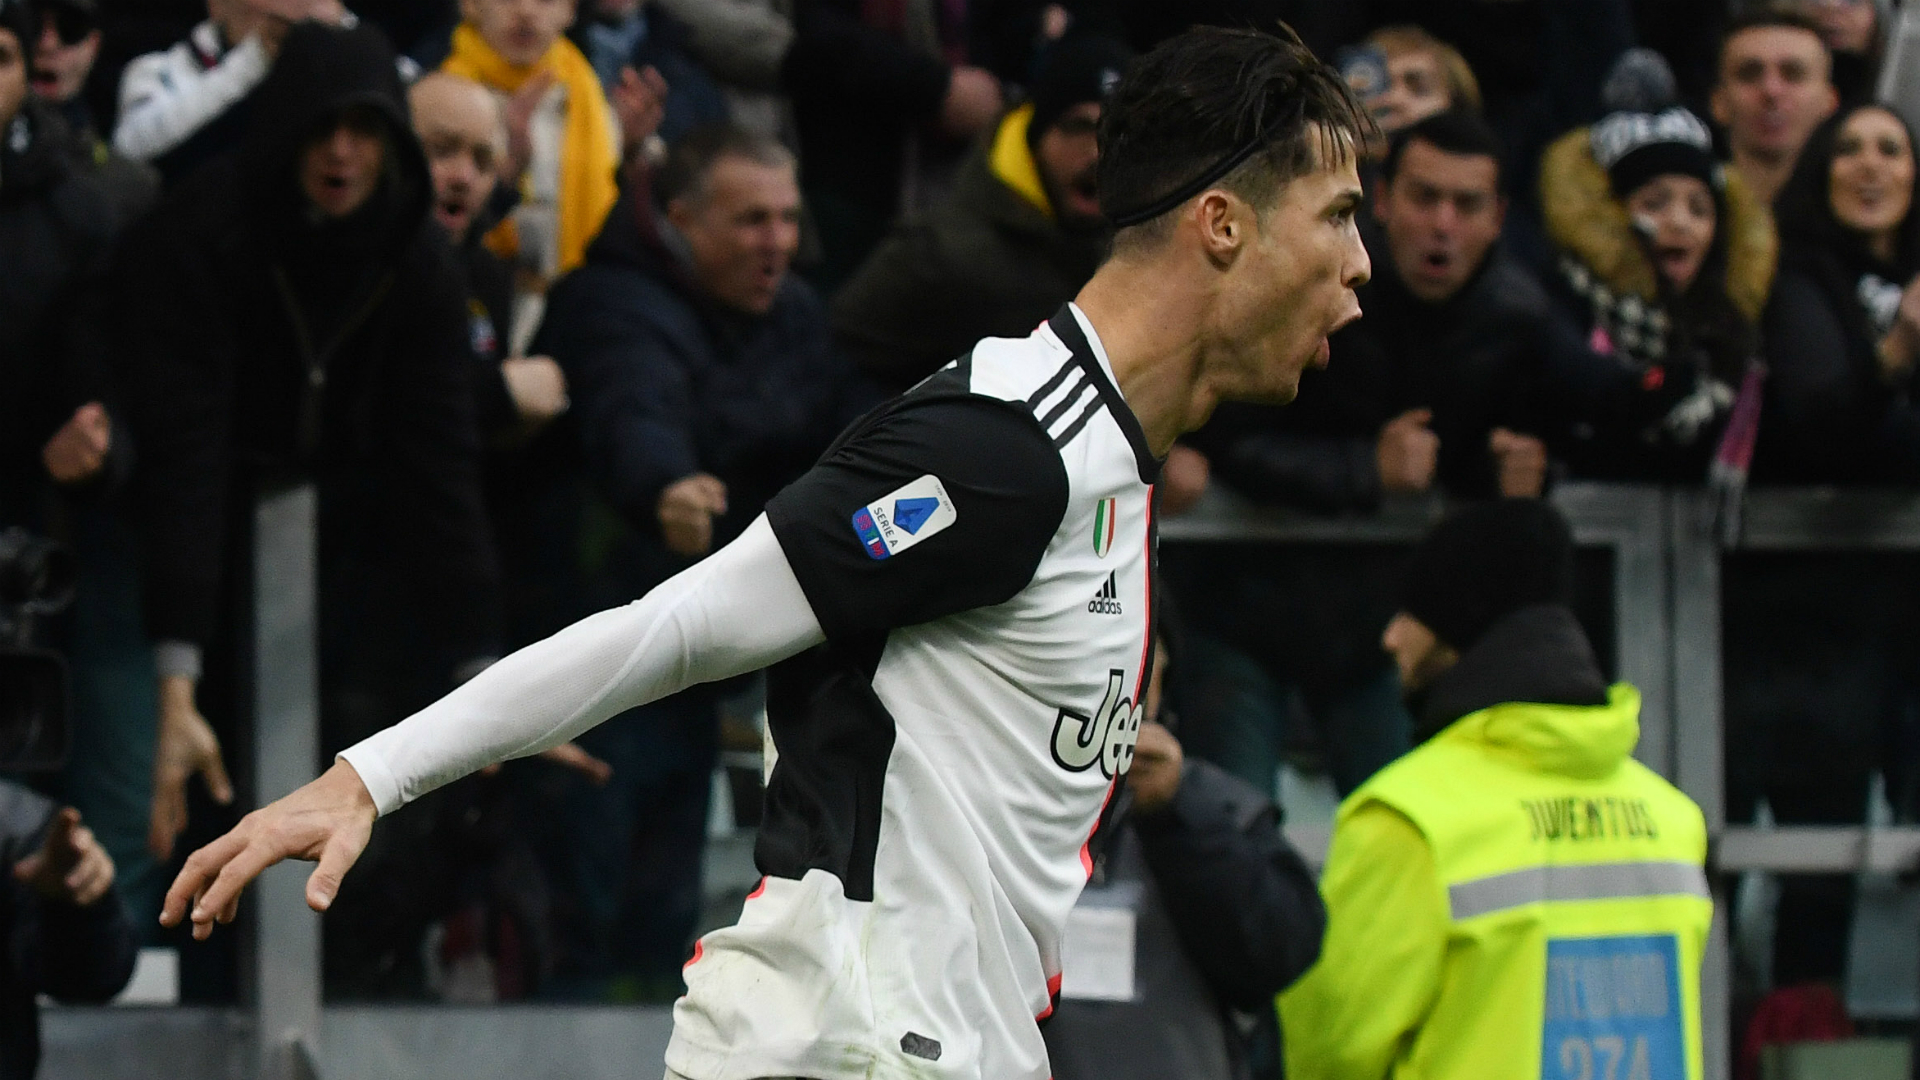 'Air' Ronaldo hang time gives Juventus the win